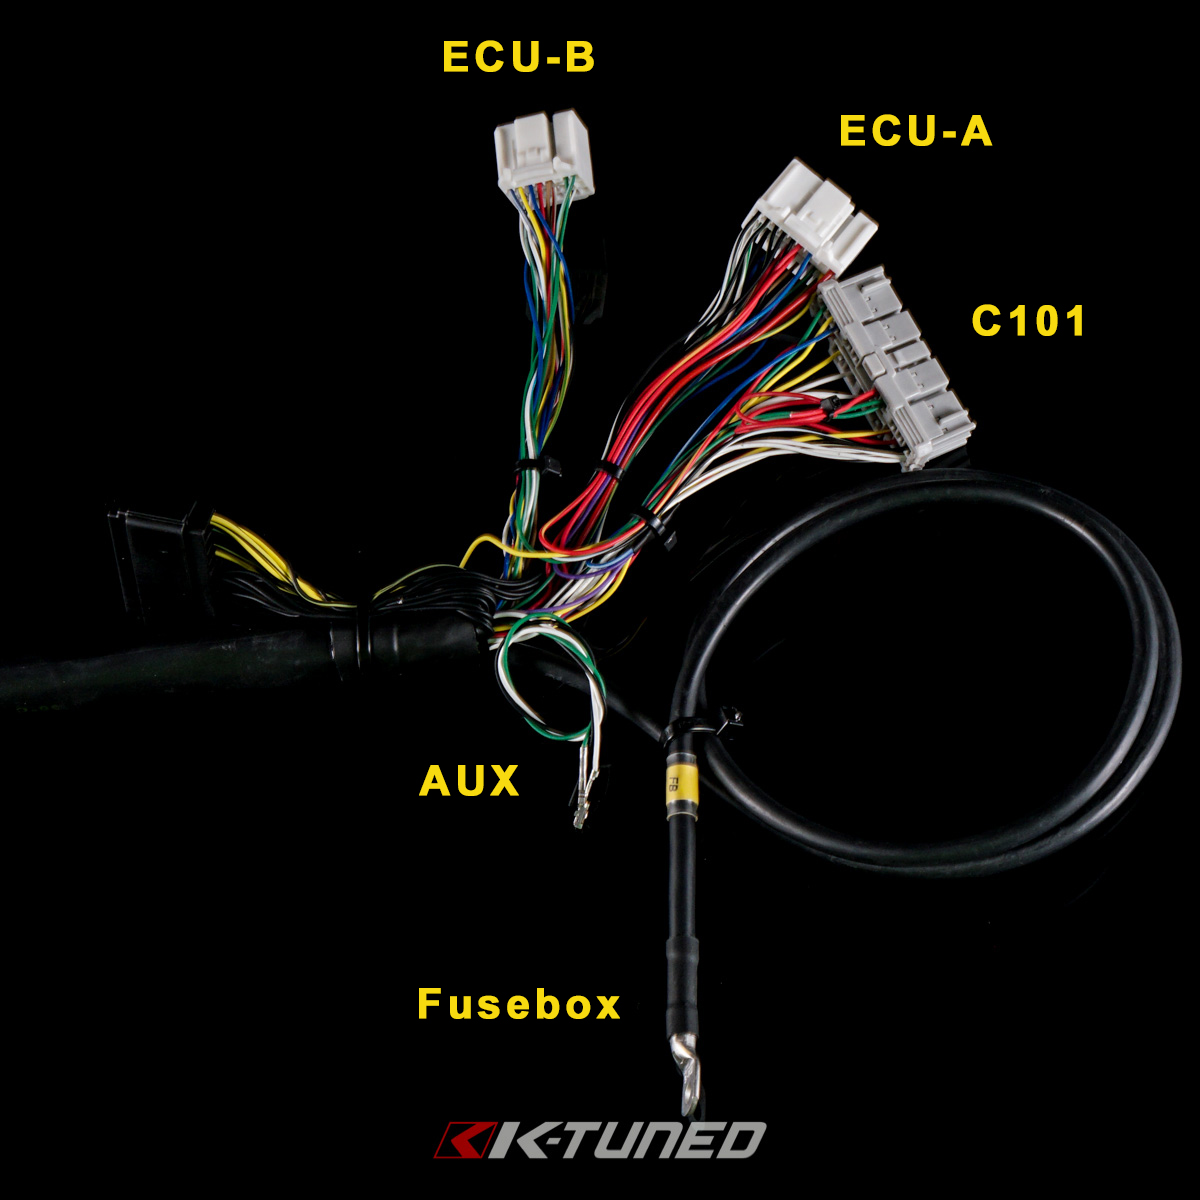 KTH 204 ENG_017 k series tucked engine harness rsx tucked wire harness at crackthecode.co